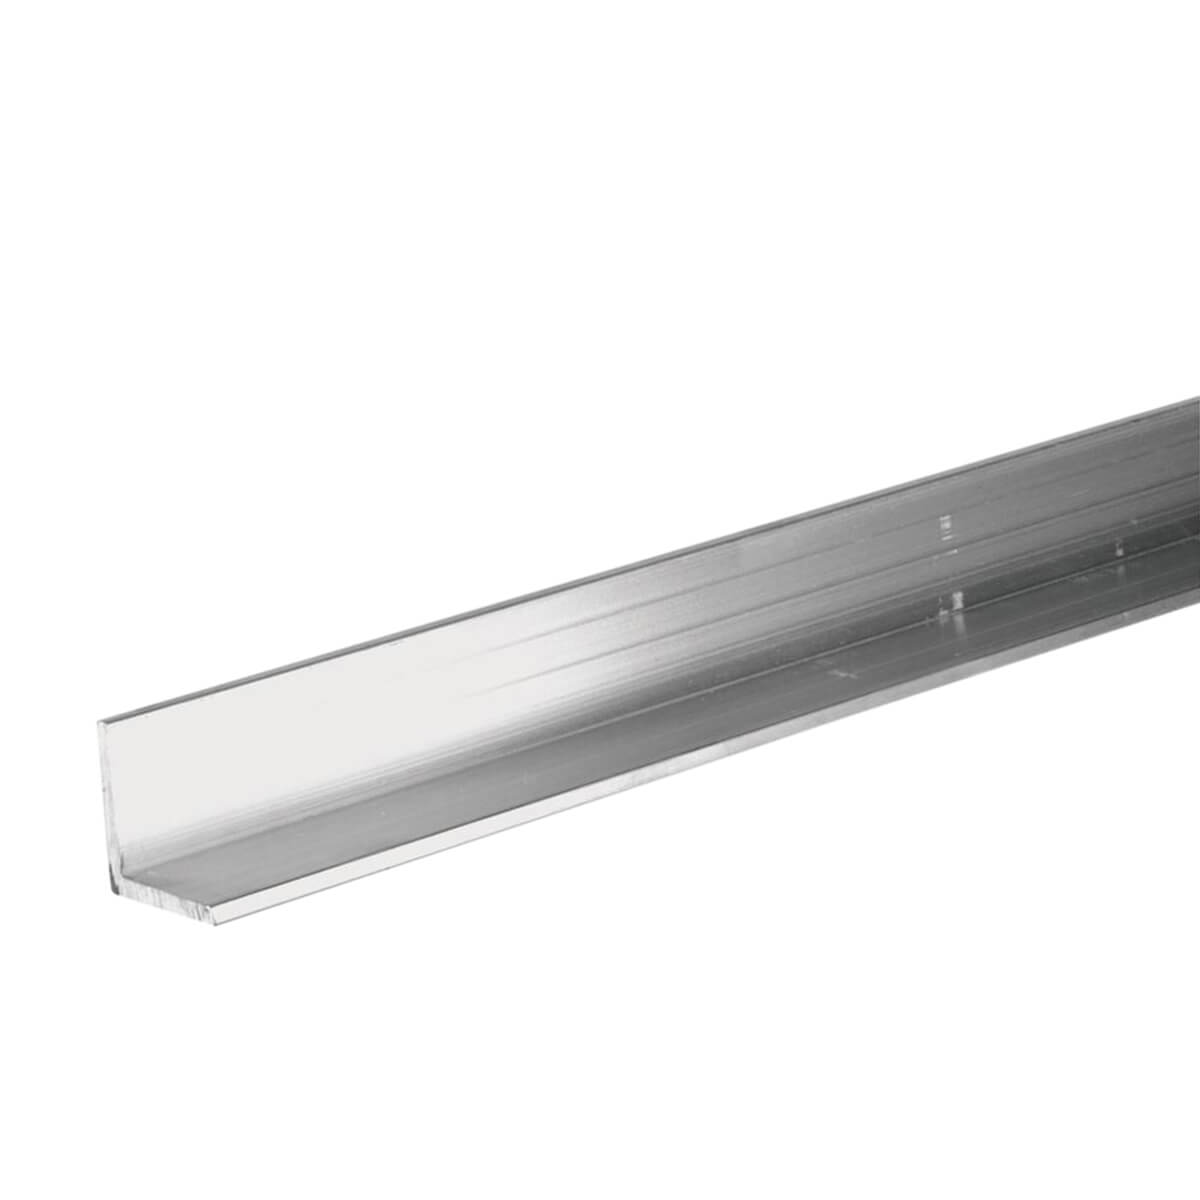 Angle Bar - Solid Steel - 3/4-in X 4-ft X 1/8-in